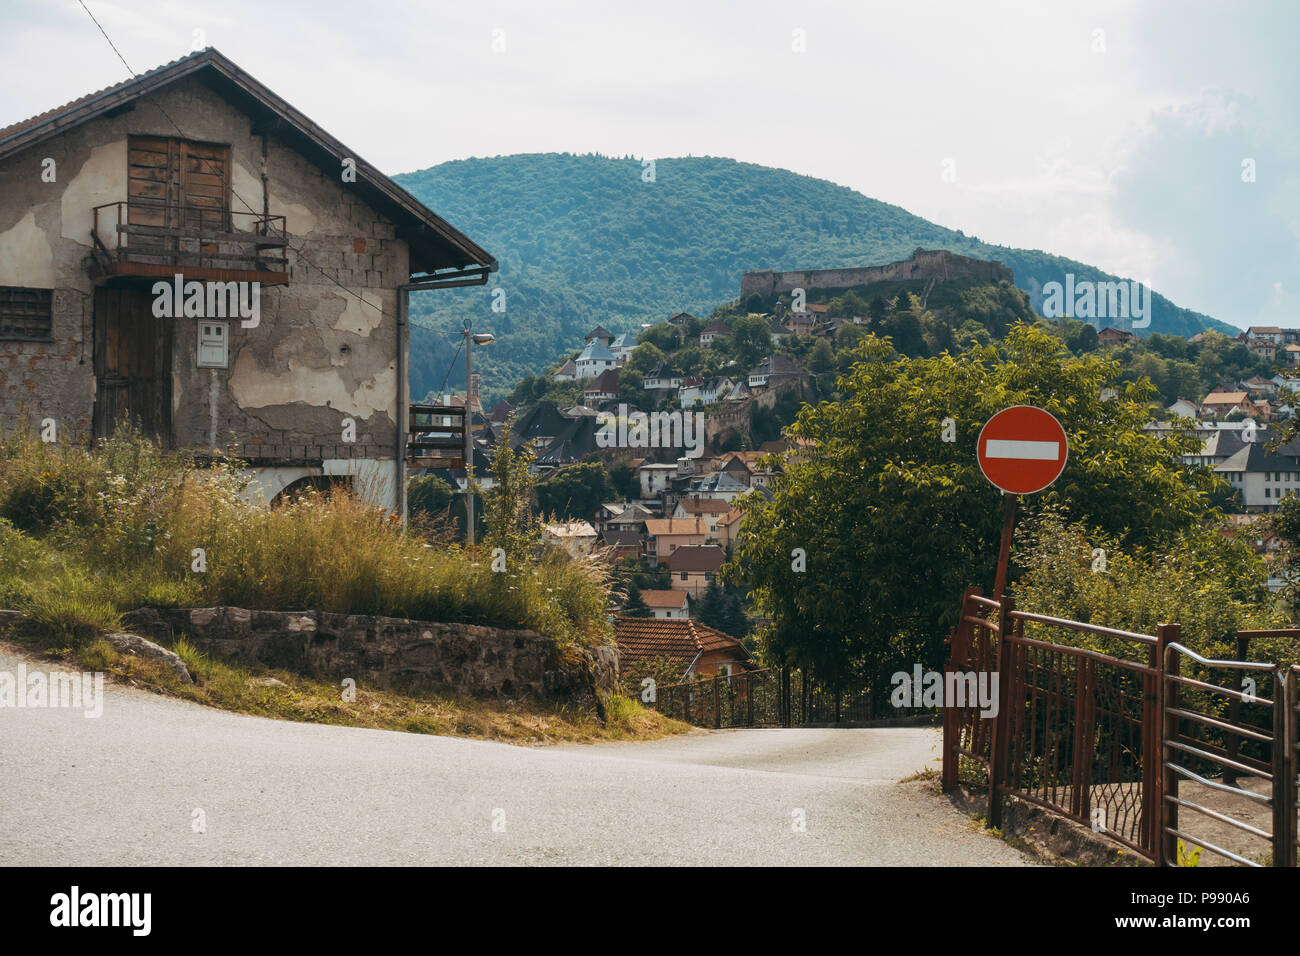 a quaint little countryside house in the small town of Jajce, Bosnia and Herzegovina. The fort can be seen on the hill behind Stock Photo